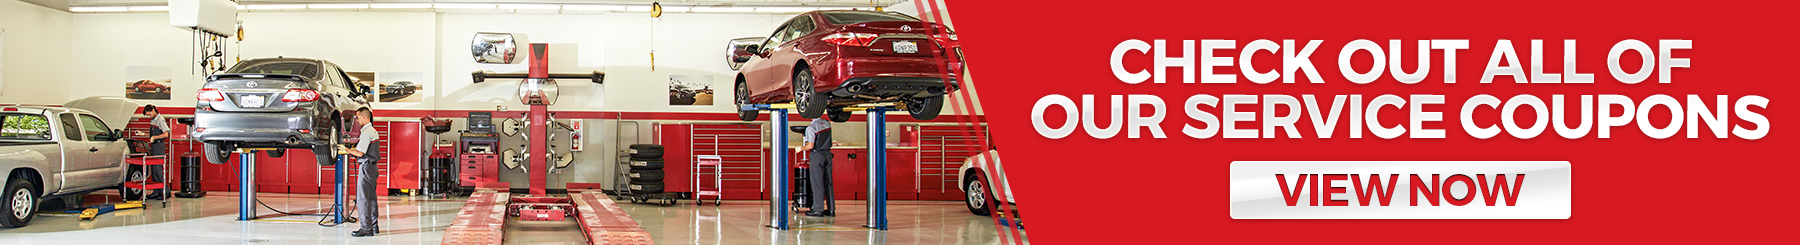 Save with Toyota Service Coupons